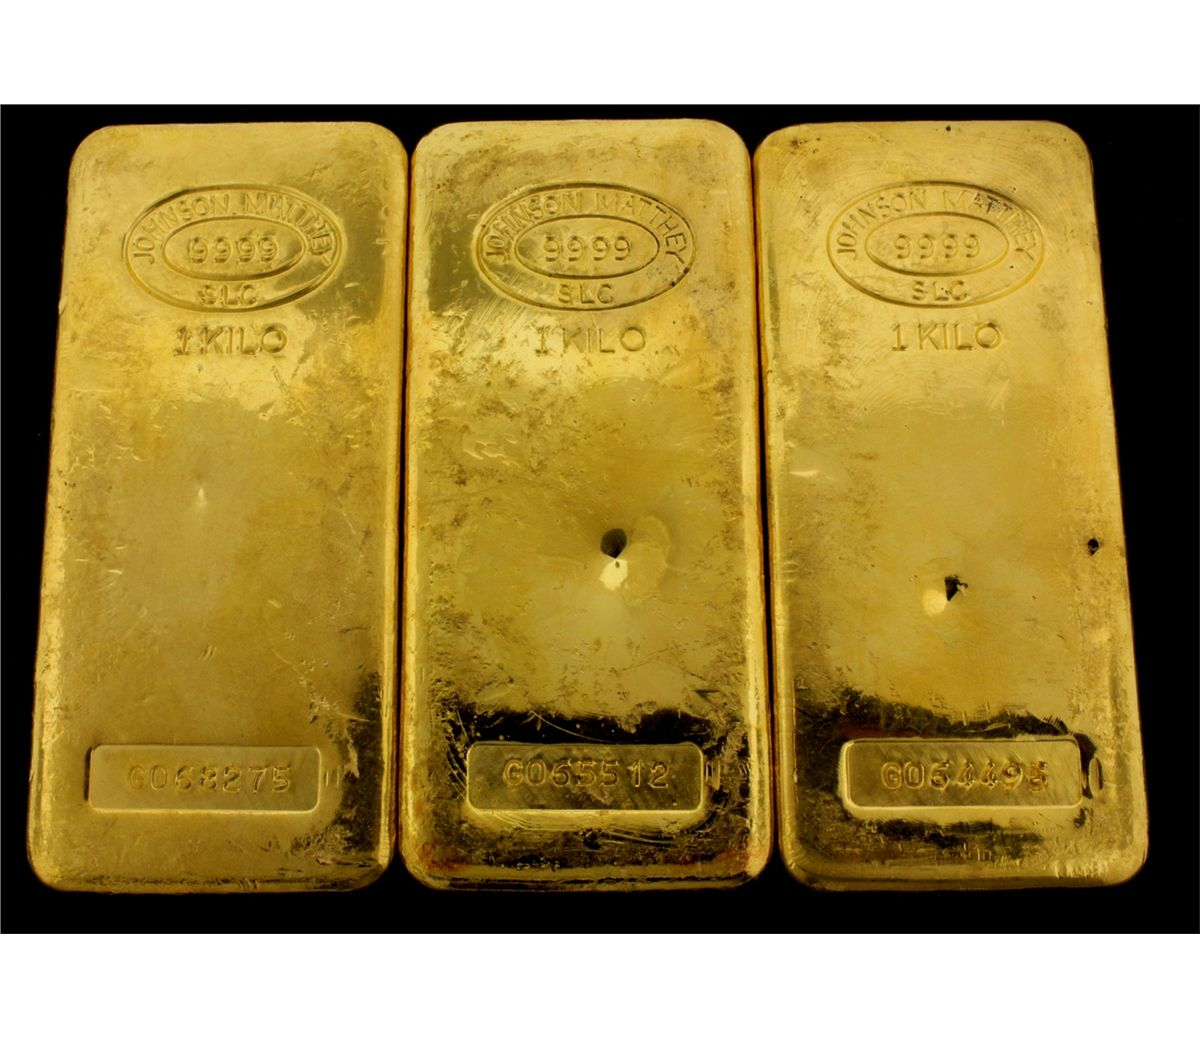 Bullion 3 One Kilogram Johnson Matthey 9999 Fine Gold